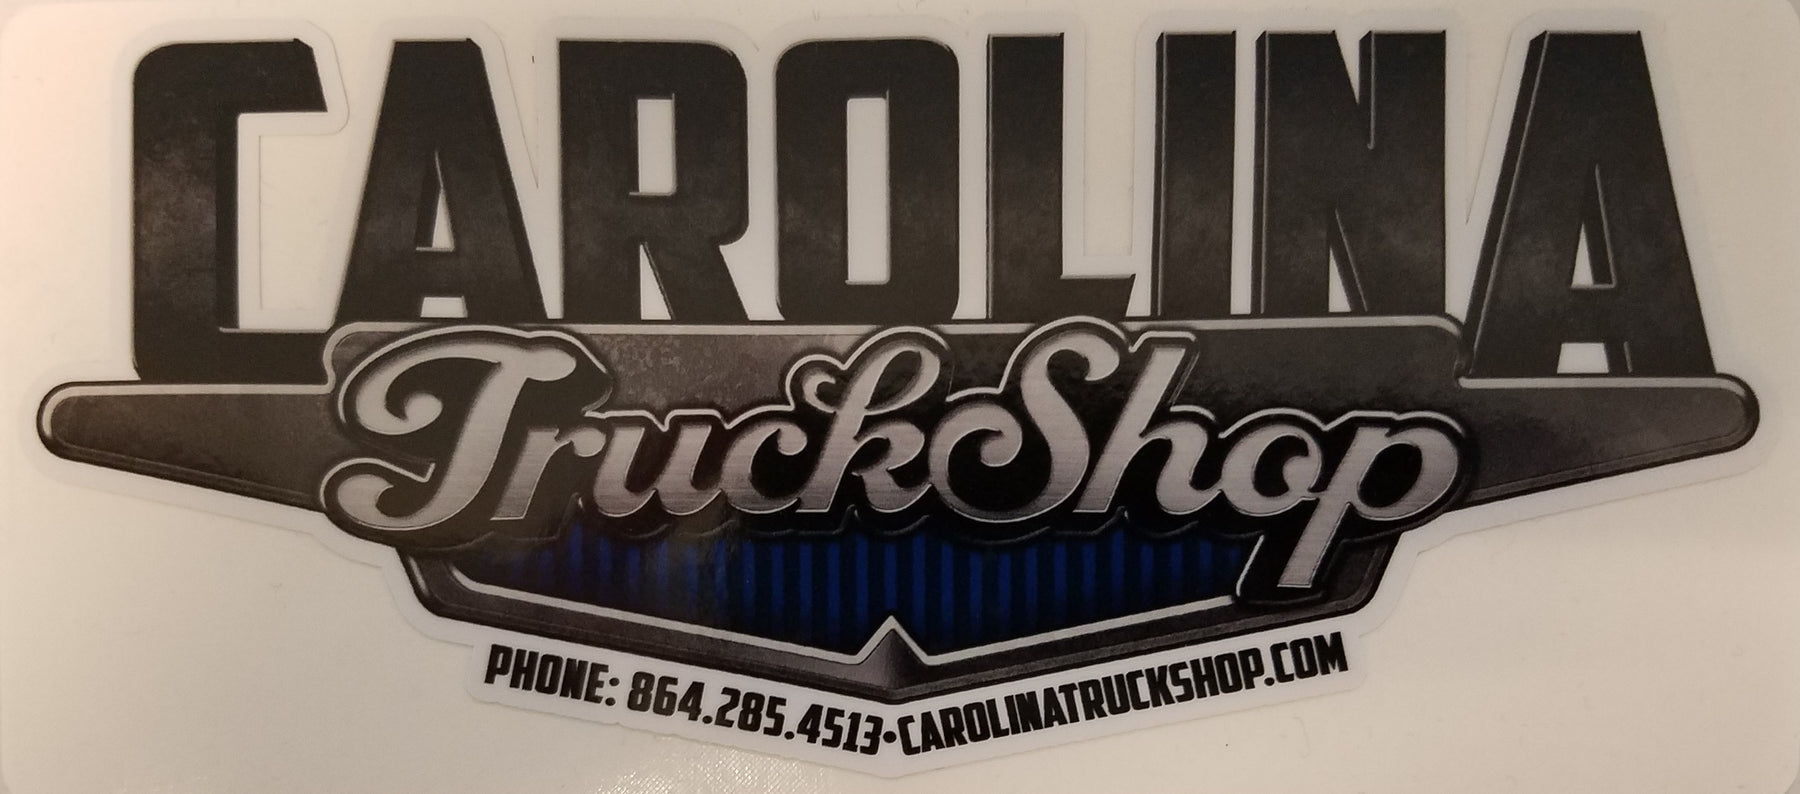 Carolina Truck Shop Decal - Medium Size